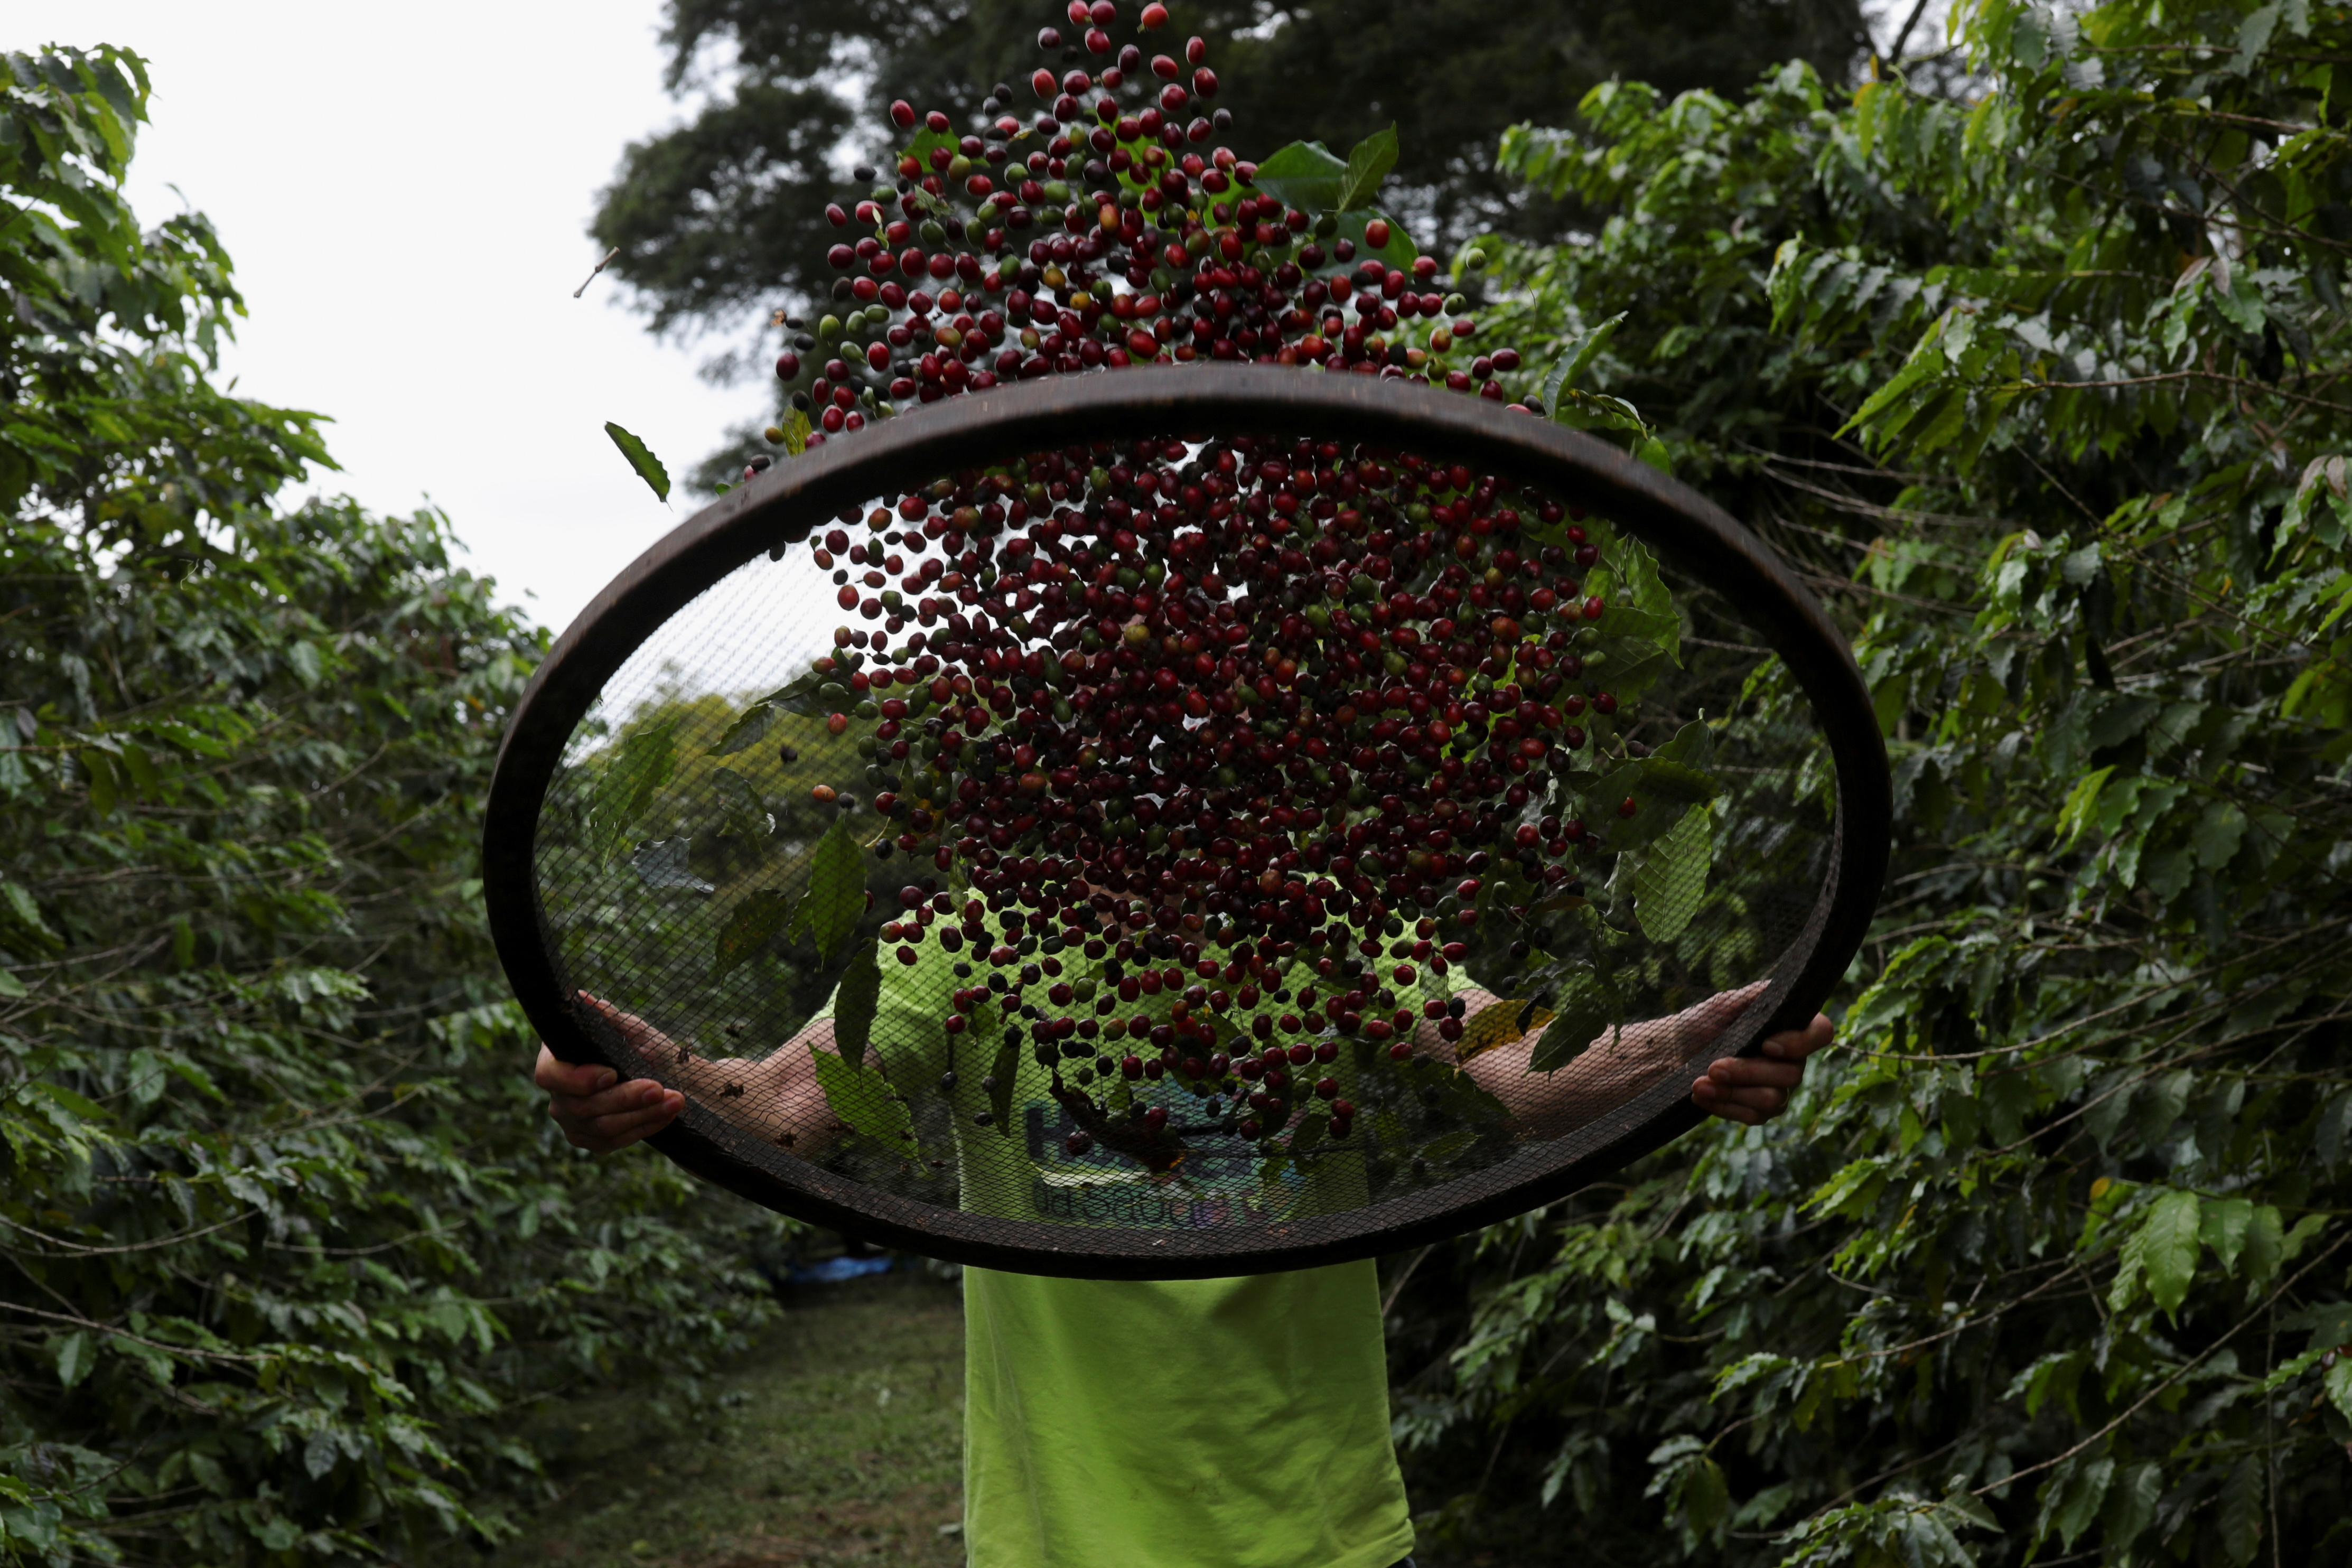 Volunteer Sergio Shigeeda works with coffee berries at the Biological Institute in Sao Paulo, Brazil May 8, 2021. Picture taken May 8, 2021. REUTERS/Amanda Perobelli